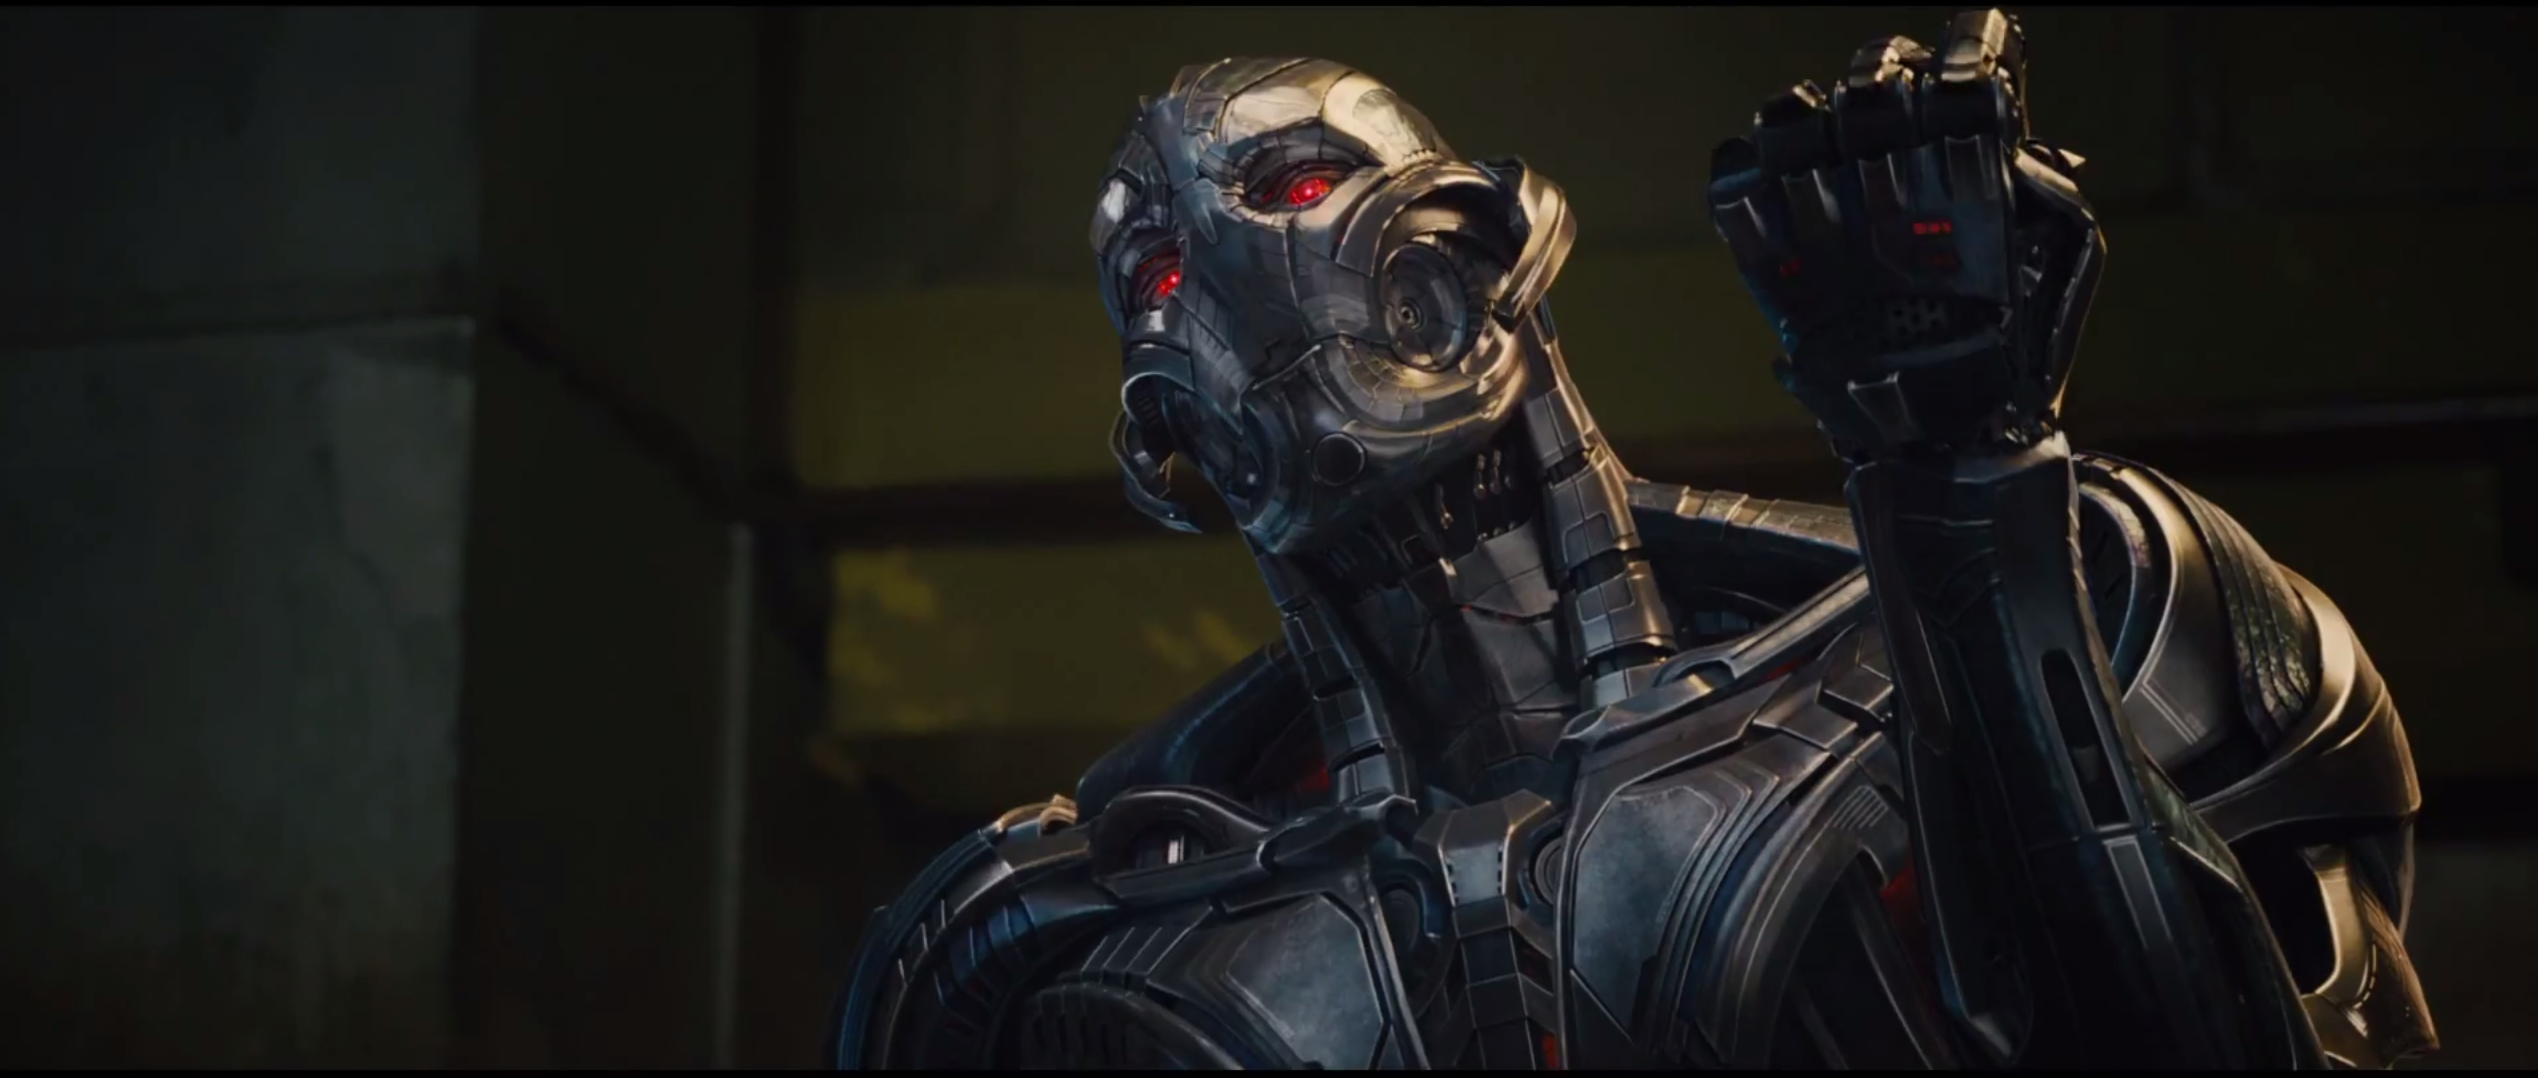 avengers-age-of-ultron-ultron.png